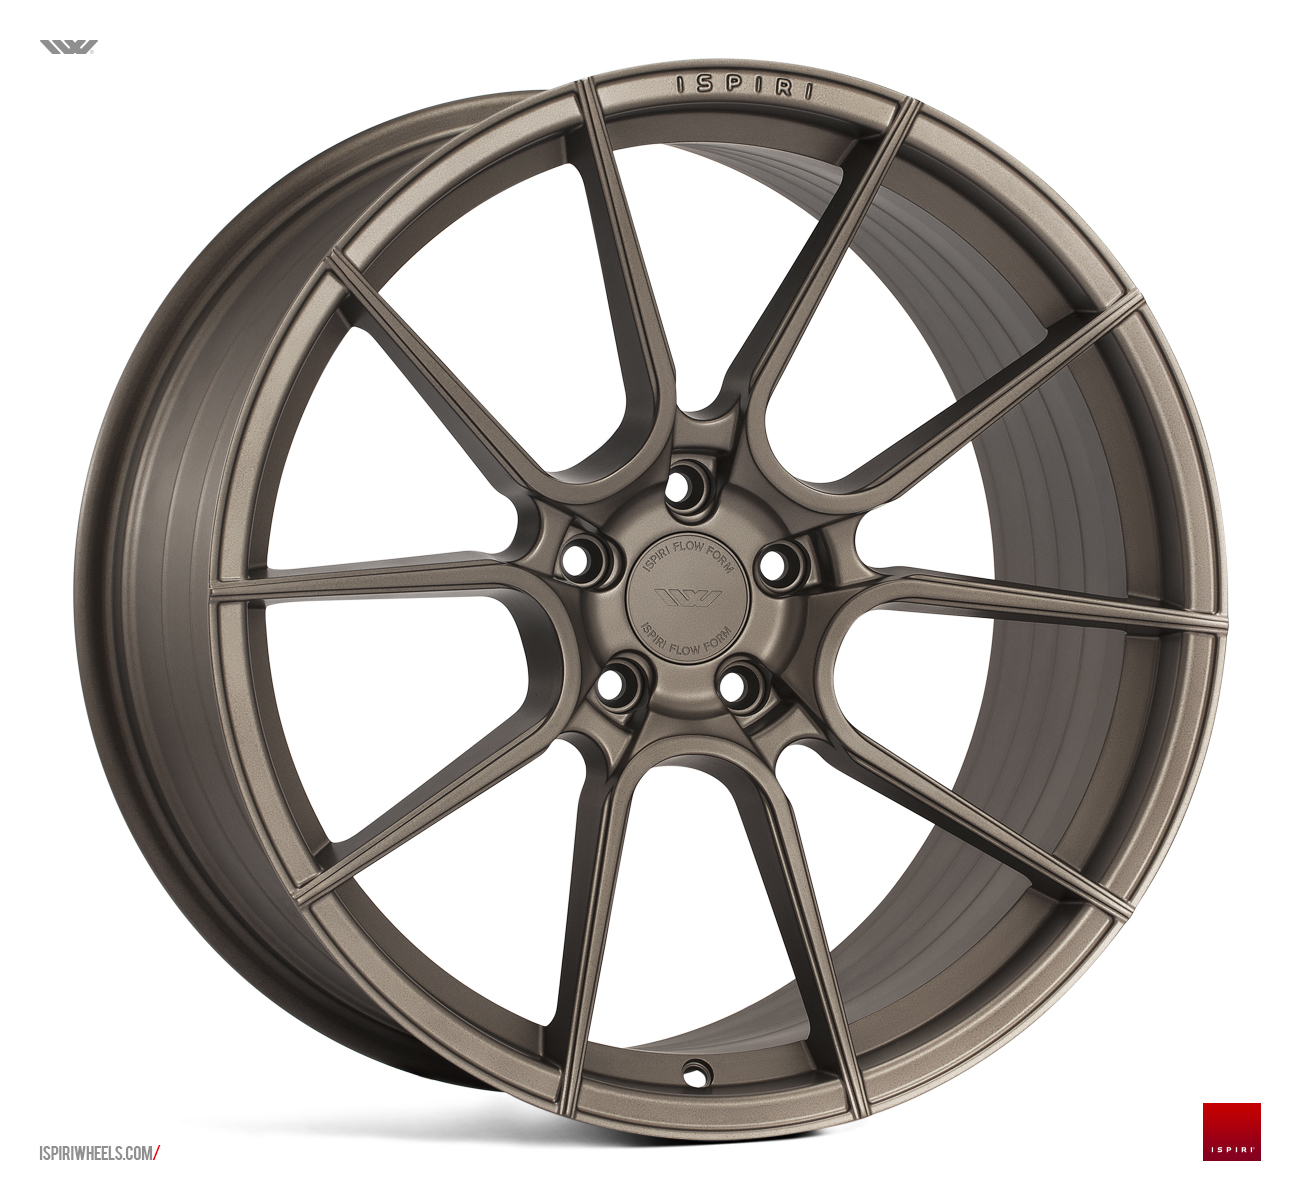 "NEW 19"" ISPIRI FFR6 TWIN 5 SPOKE ALLOY WHEELS IN MATT CARBON BRONZE, VARIOUS FITMENTS AVAILABLE"